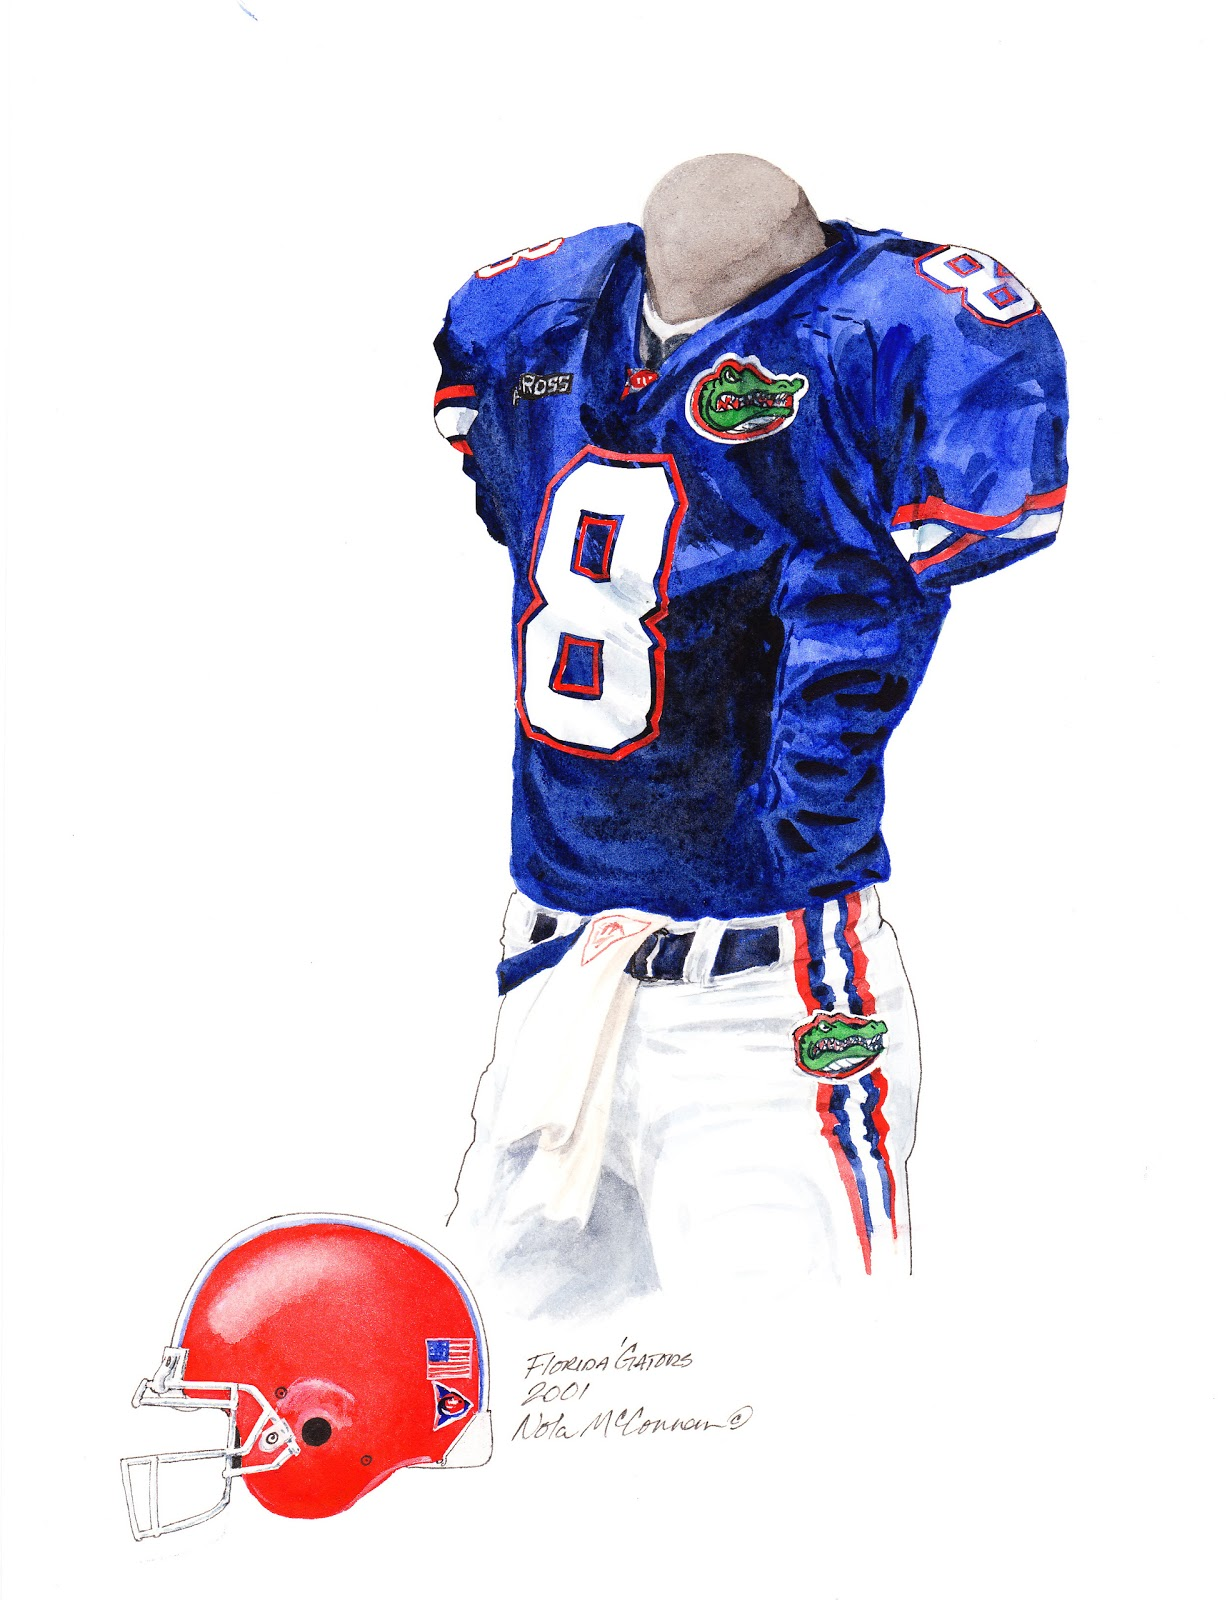 c66857ea1 2001 University of Florida Gators football uniform original art for sale